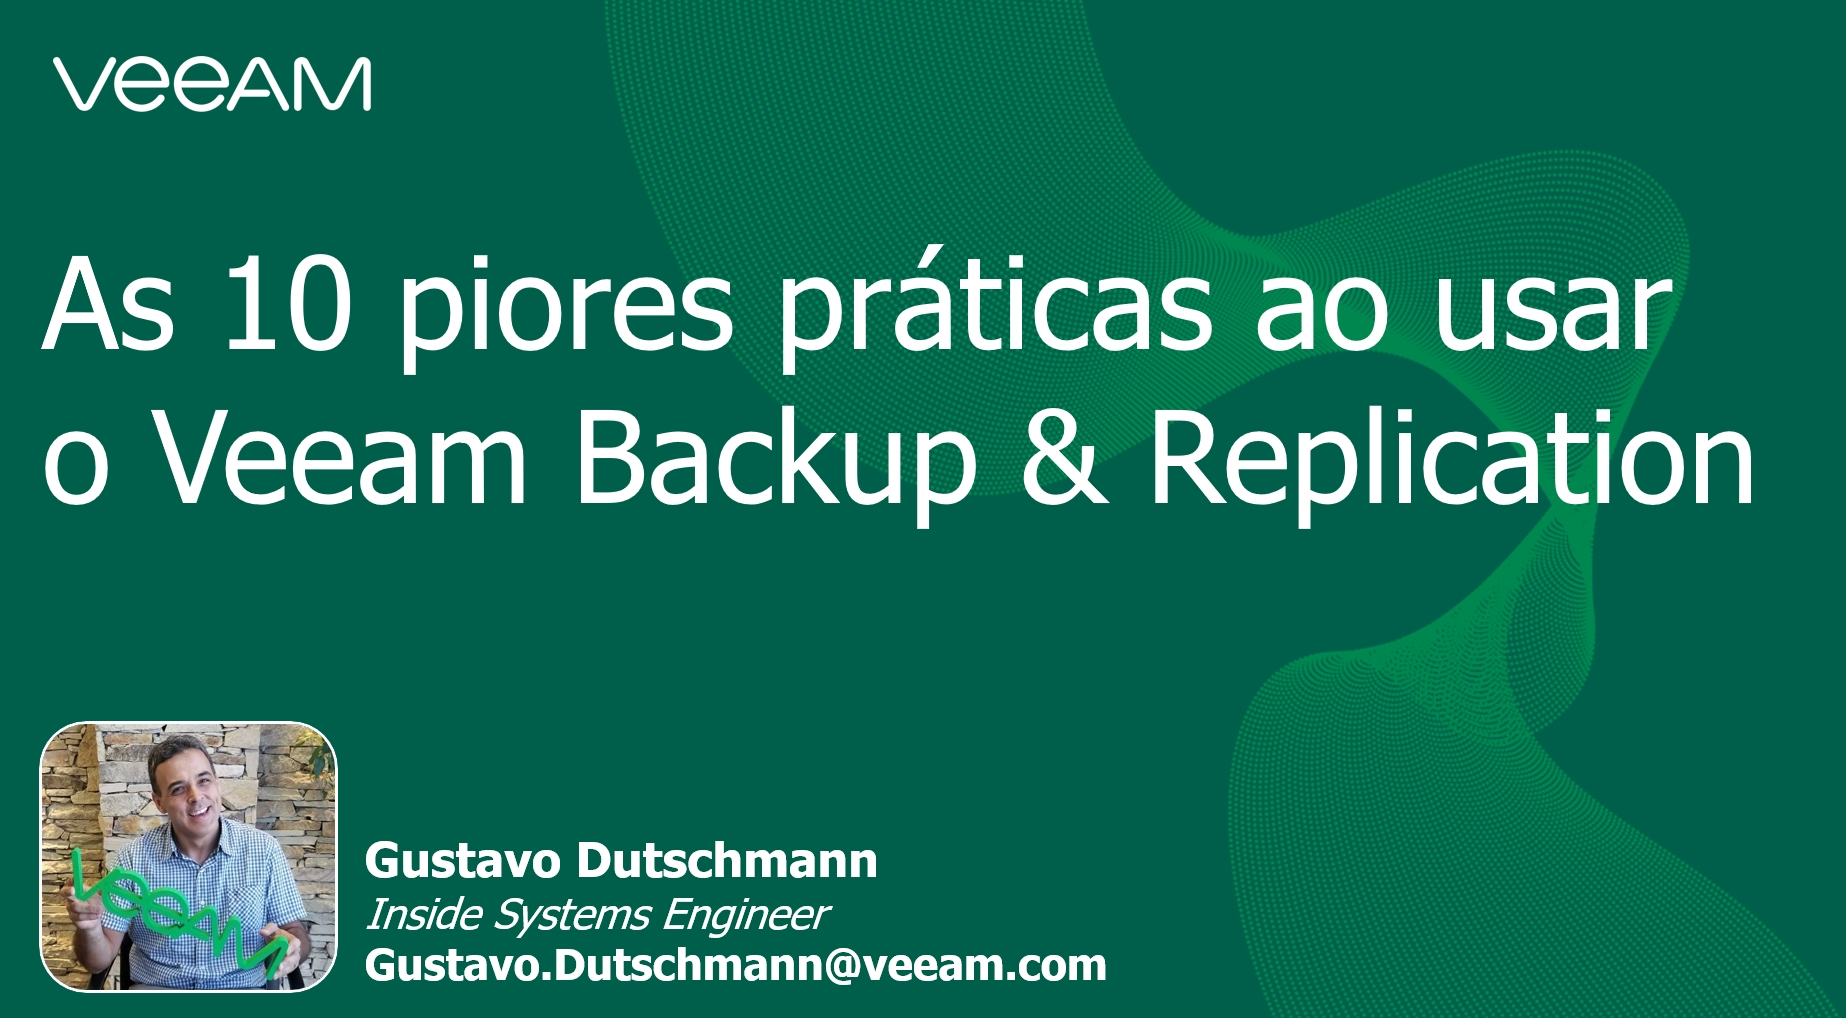 As 10 piores práticas ao usar o Veeam Backup & Replication